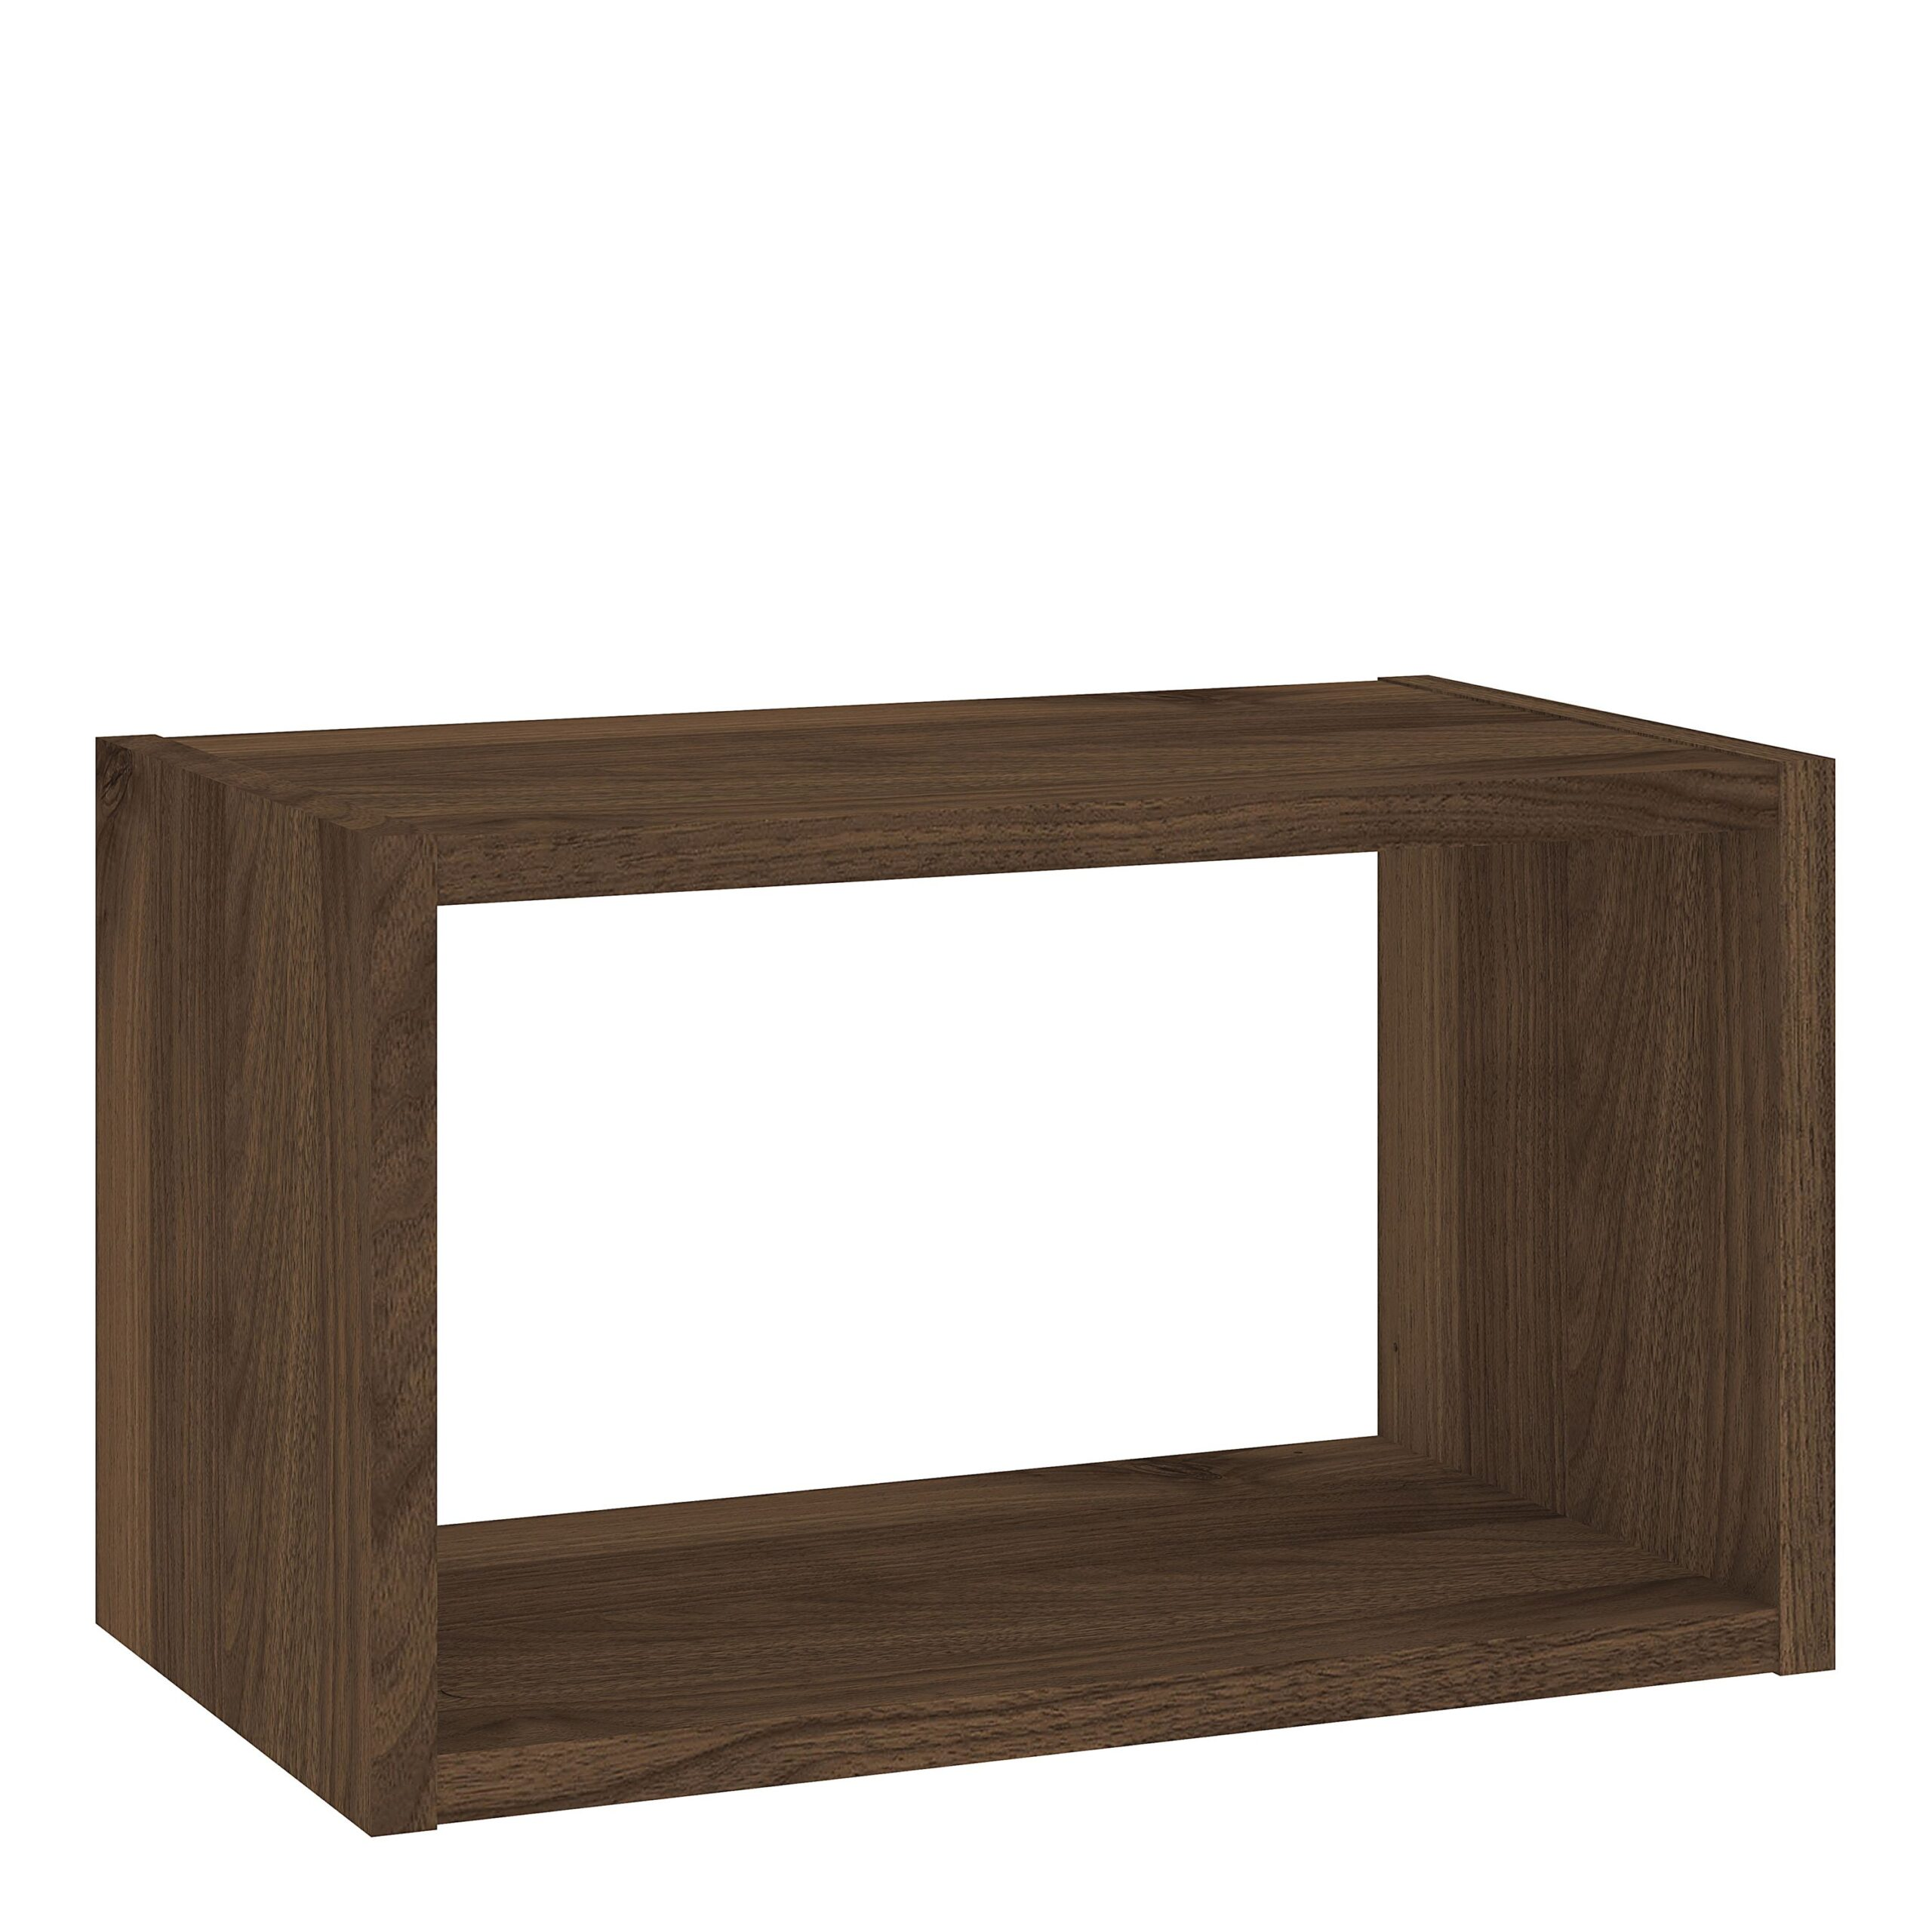 Ramen Wall Shelf Unity in Walnut